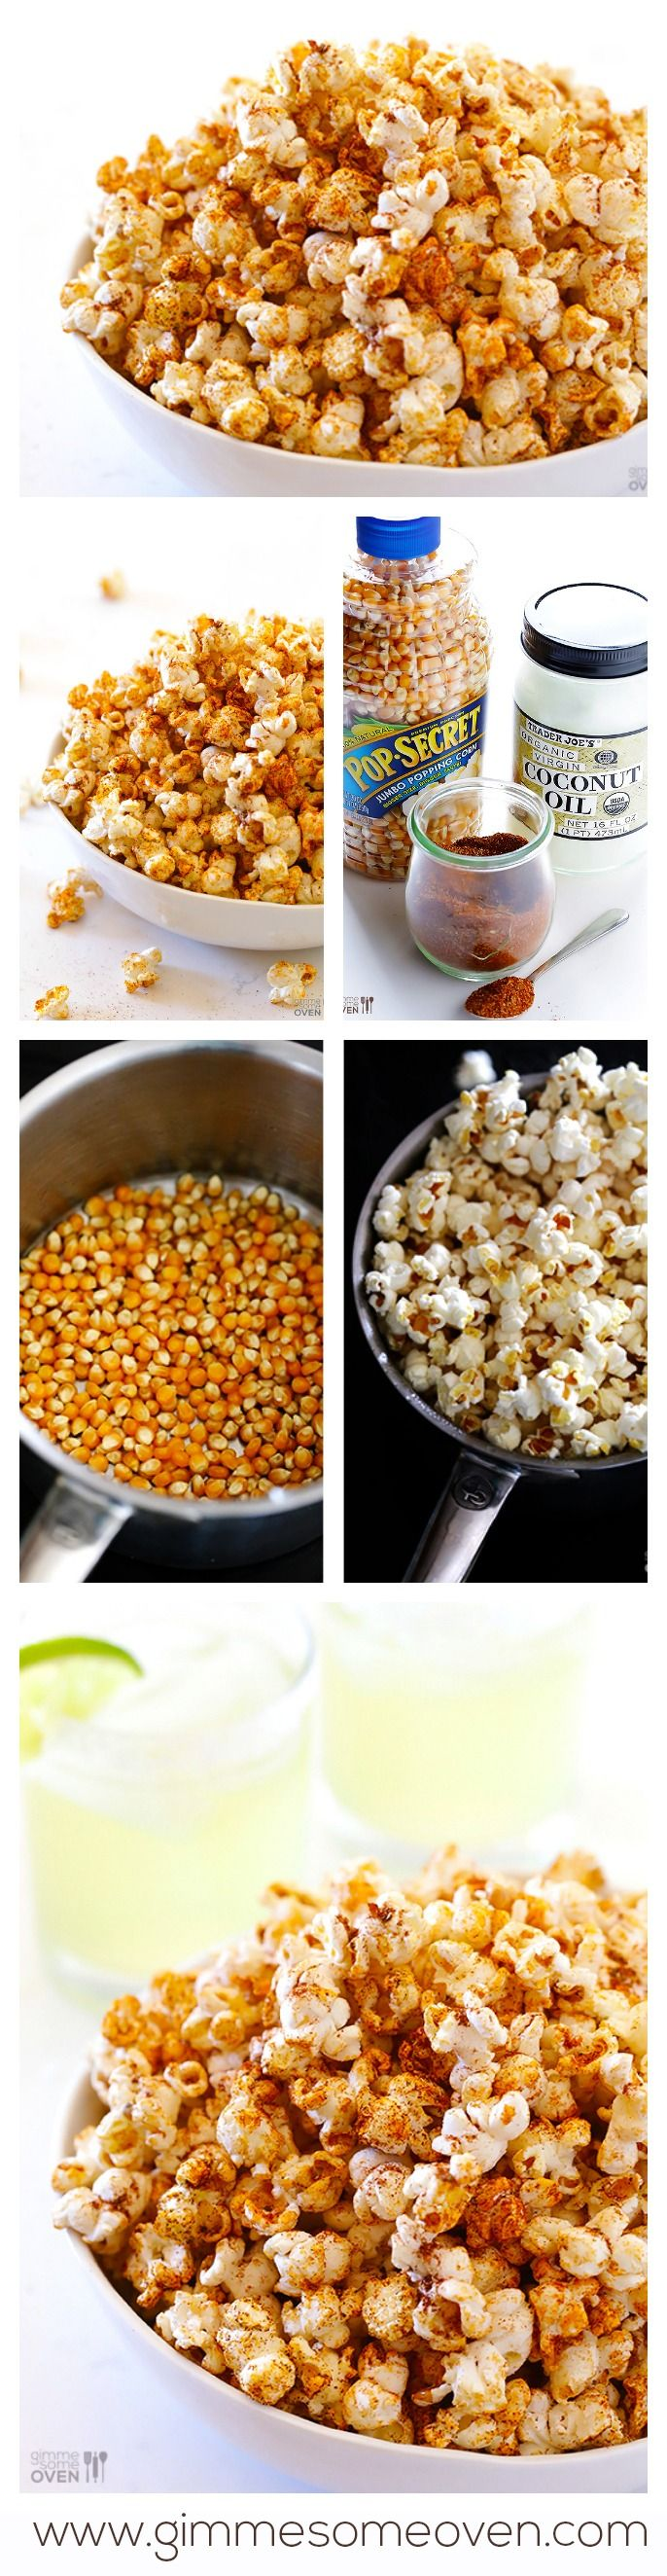 Taco Popcorn -- healthy, easy, and FULL of great taco flavor! gimmesomeoven.com #popcorn